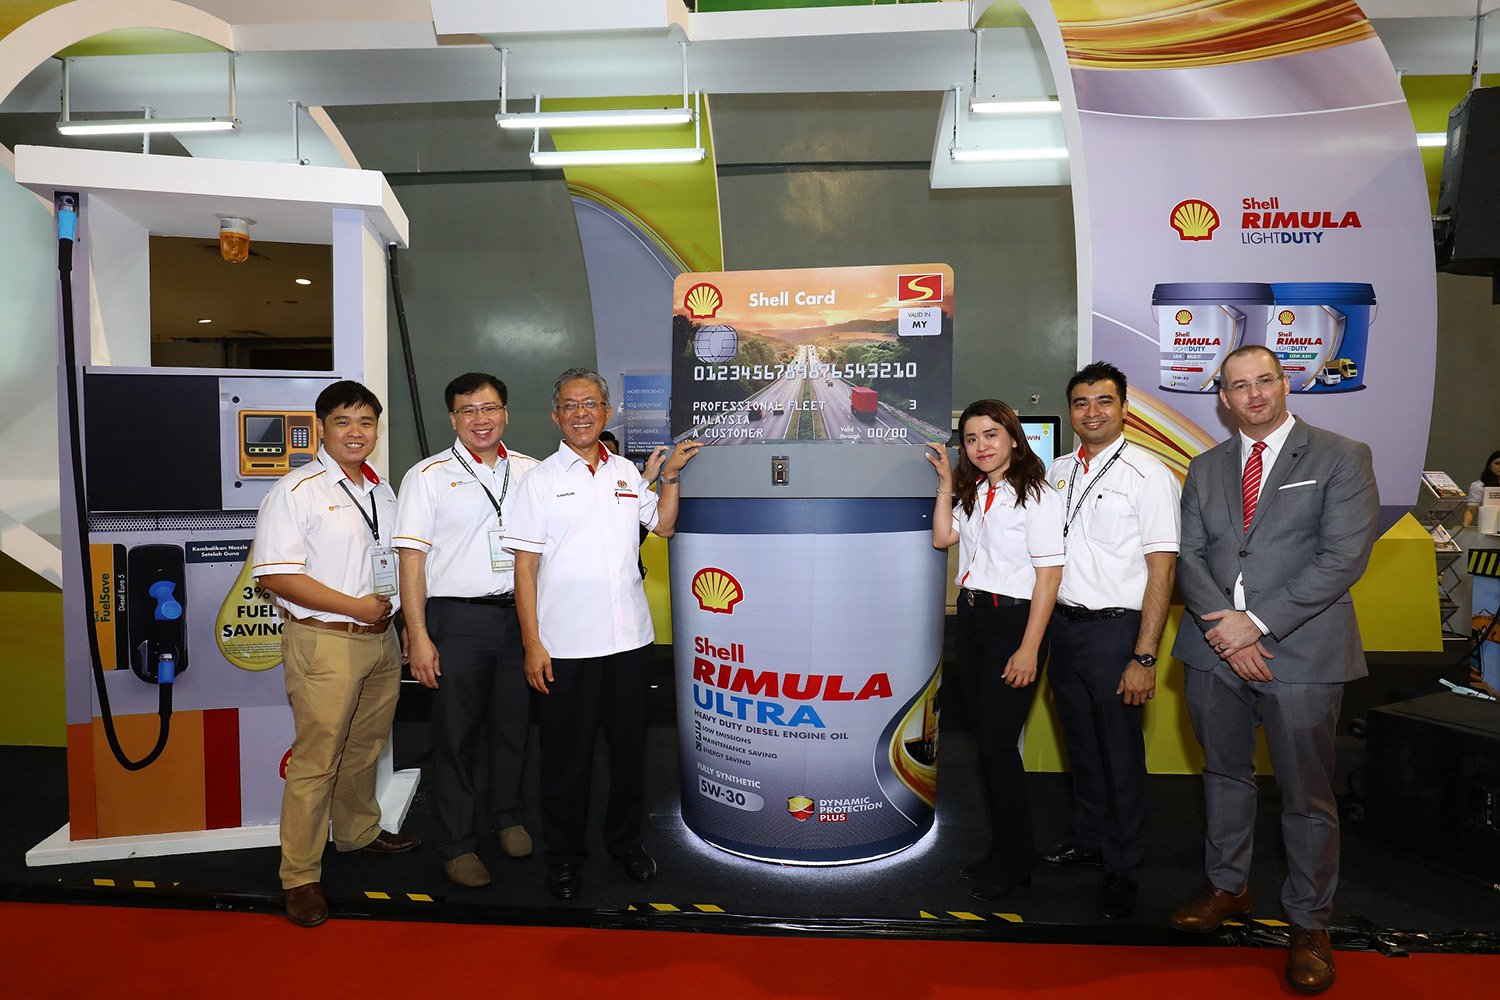 SHELL'S END-TO-END SOLUTIONS FOR THE TRANSPORT AND LOGISTICS INDUSTRY